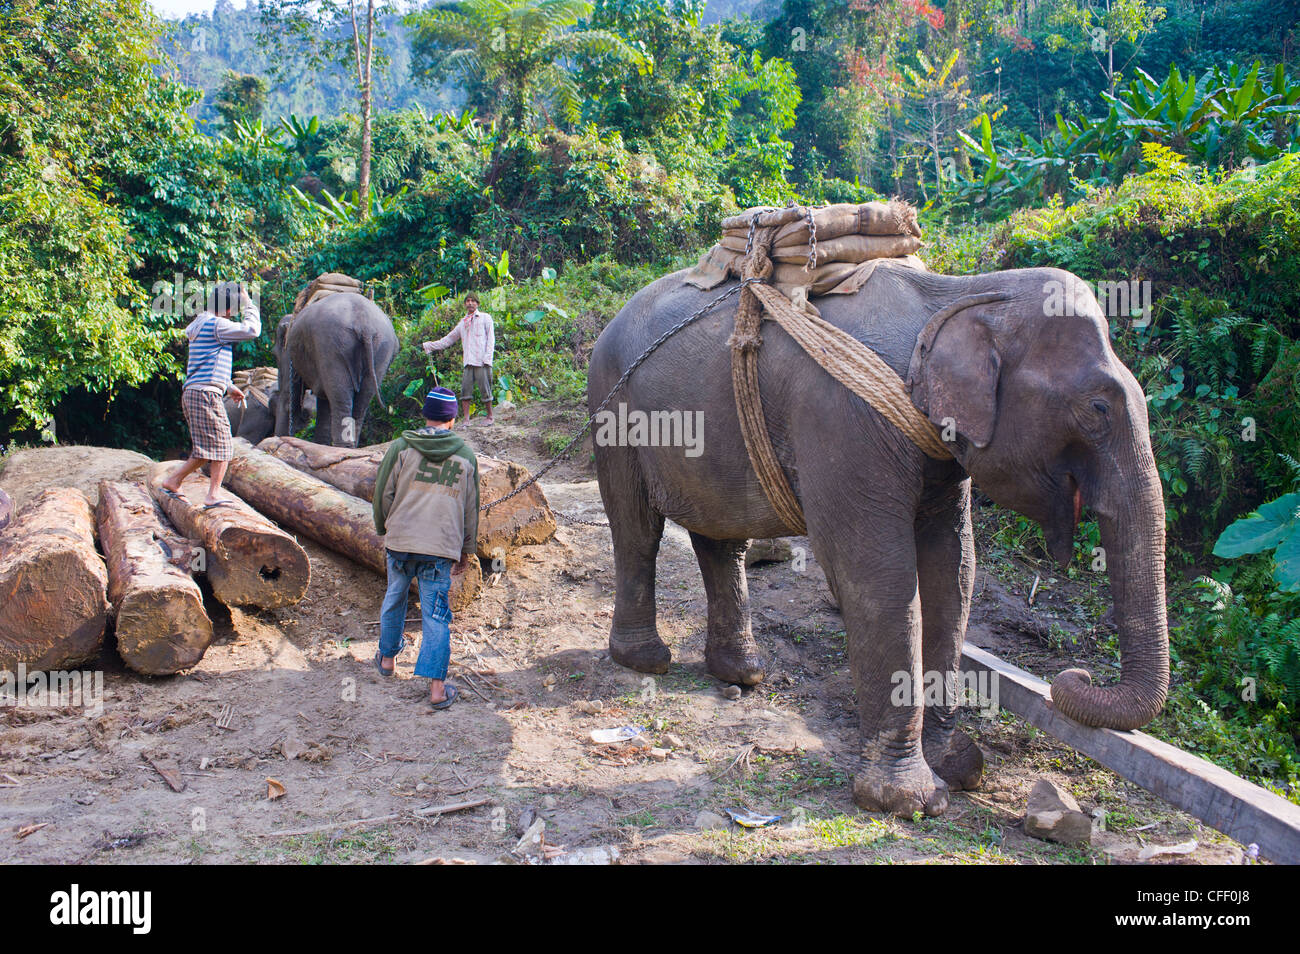 Working Elephants Carrying Illegally Logged Tropical Wood